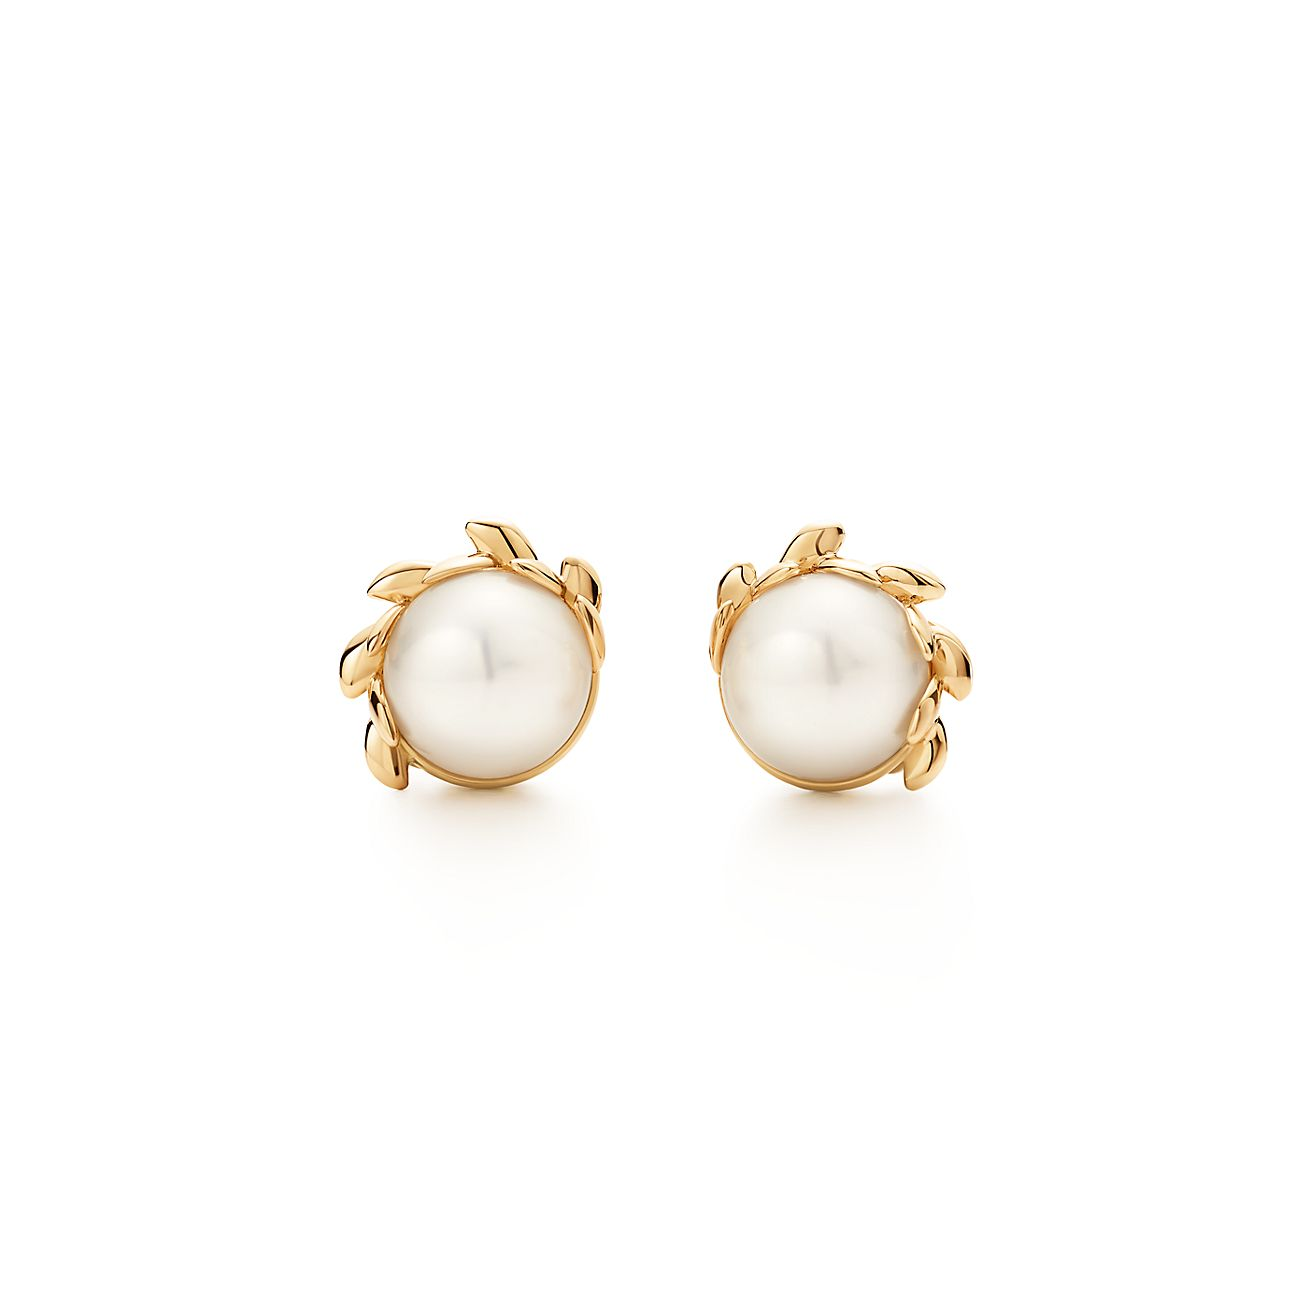 Earrings of cultured freshwater pearls with diamonds in 18k gold Tiffany & Co. a00WP